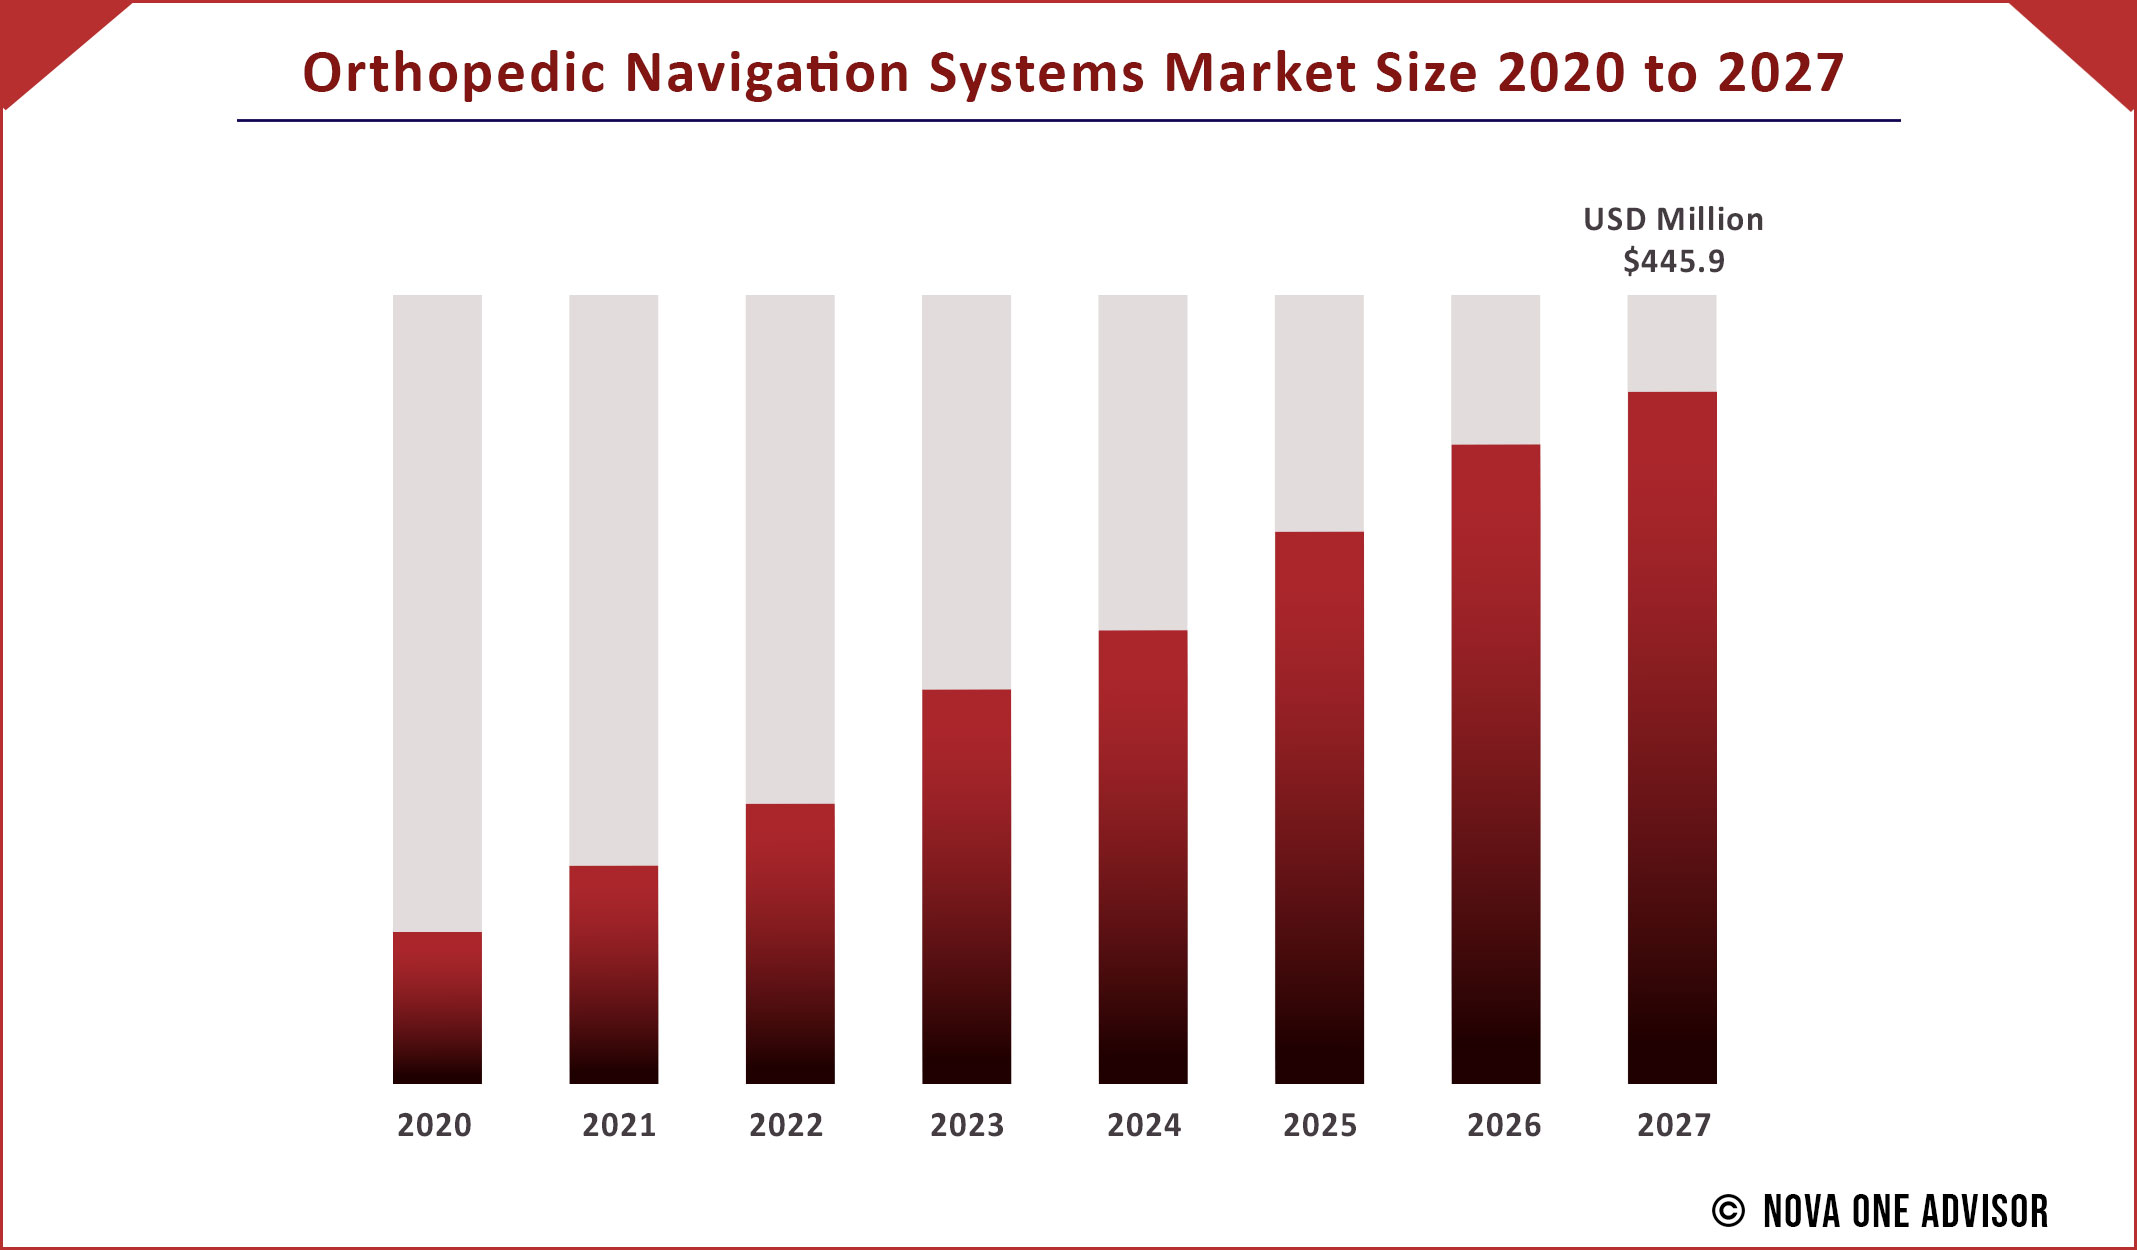 Orthopedic Navigation Systems Market Size 2020 to 2027